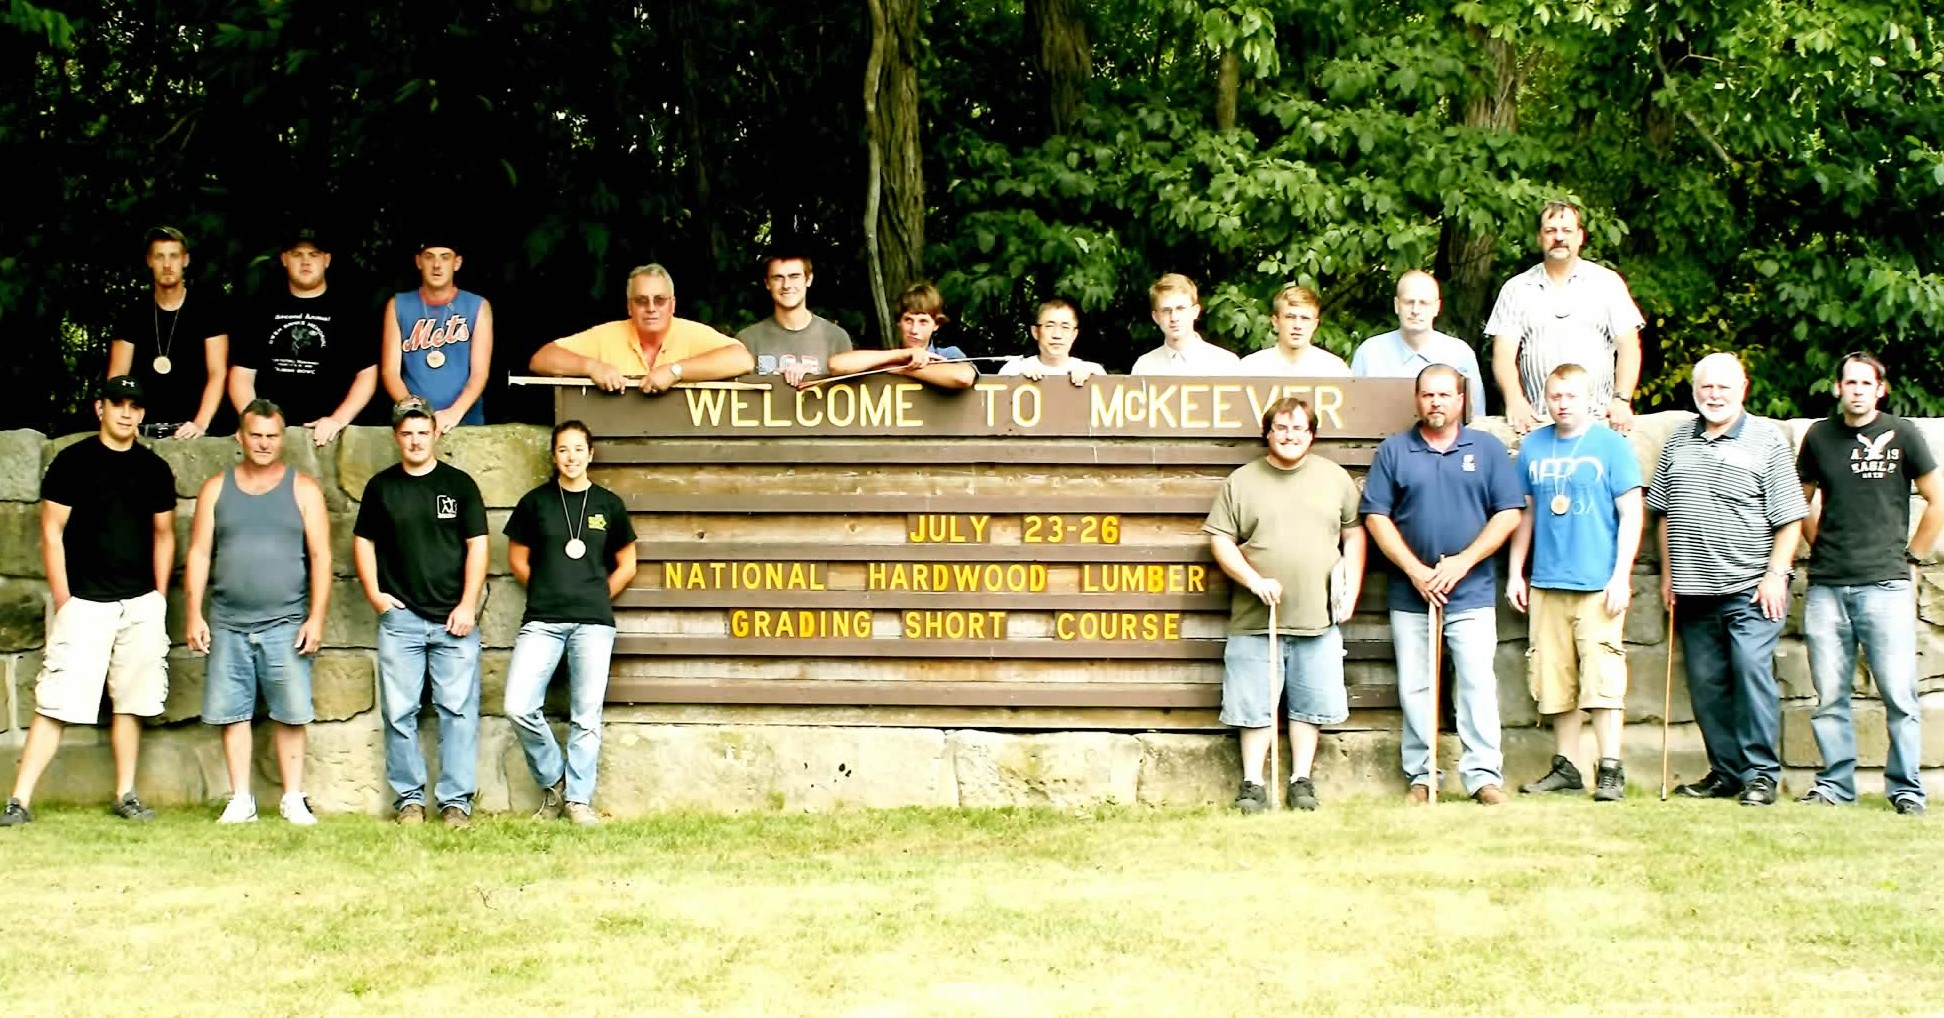 allegheny mountain hardwood flooring emlenton pa of nhla lumber inspection school with image